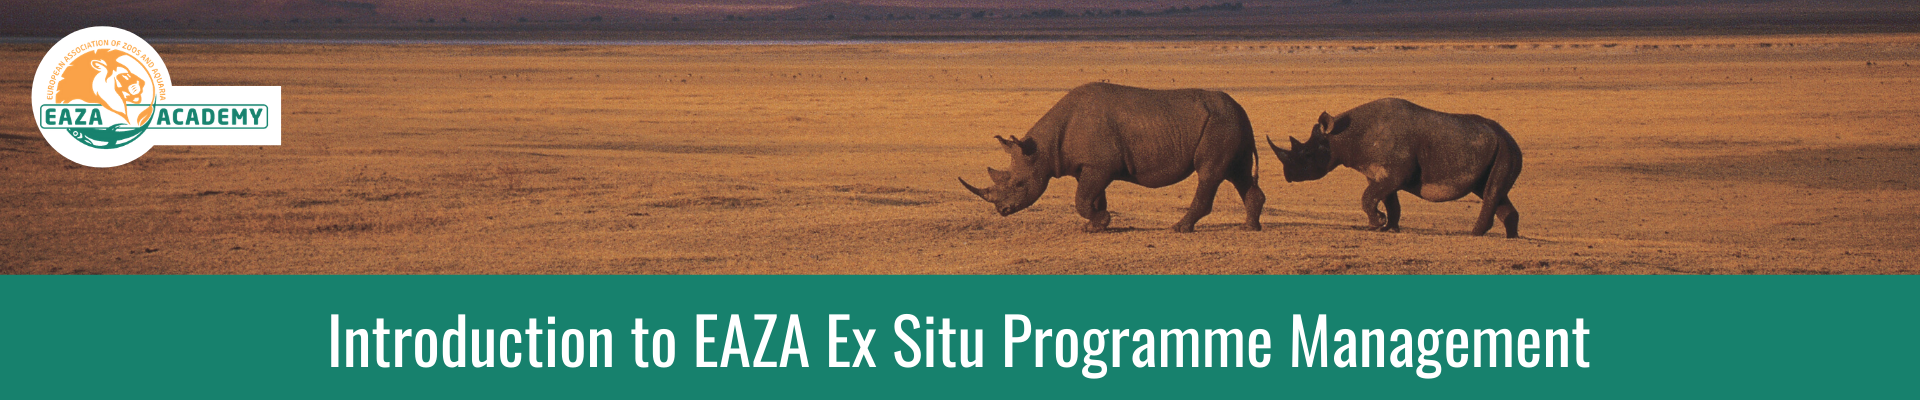 Introduction to EAZA Ex situ Programme Management_February